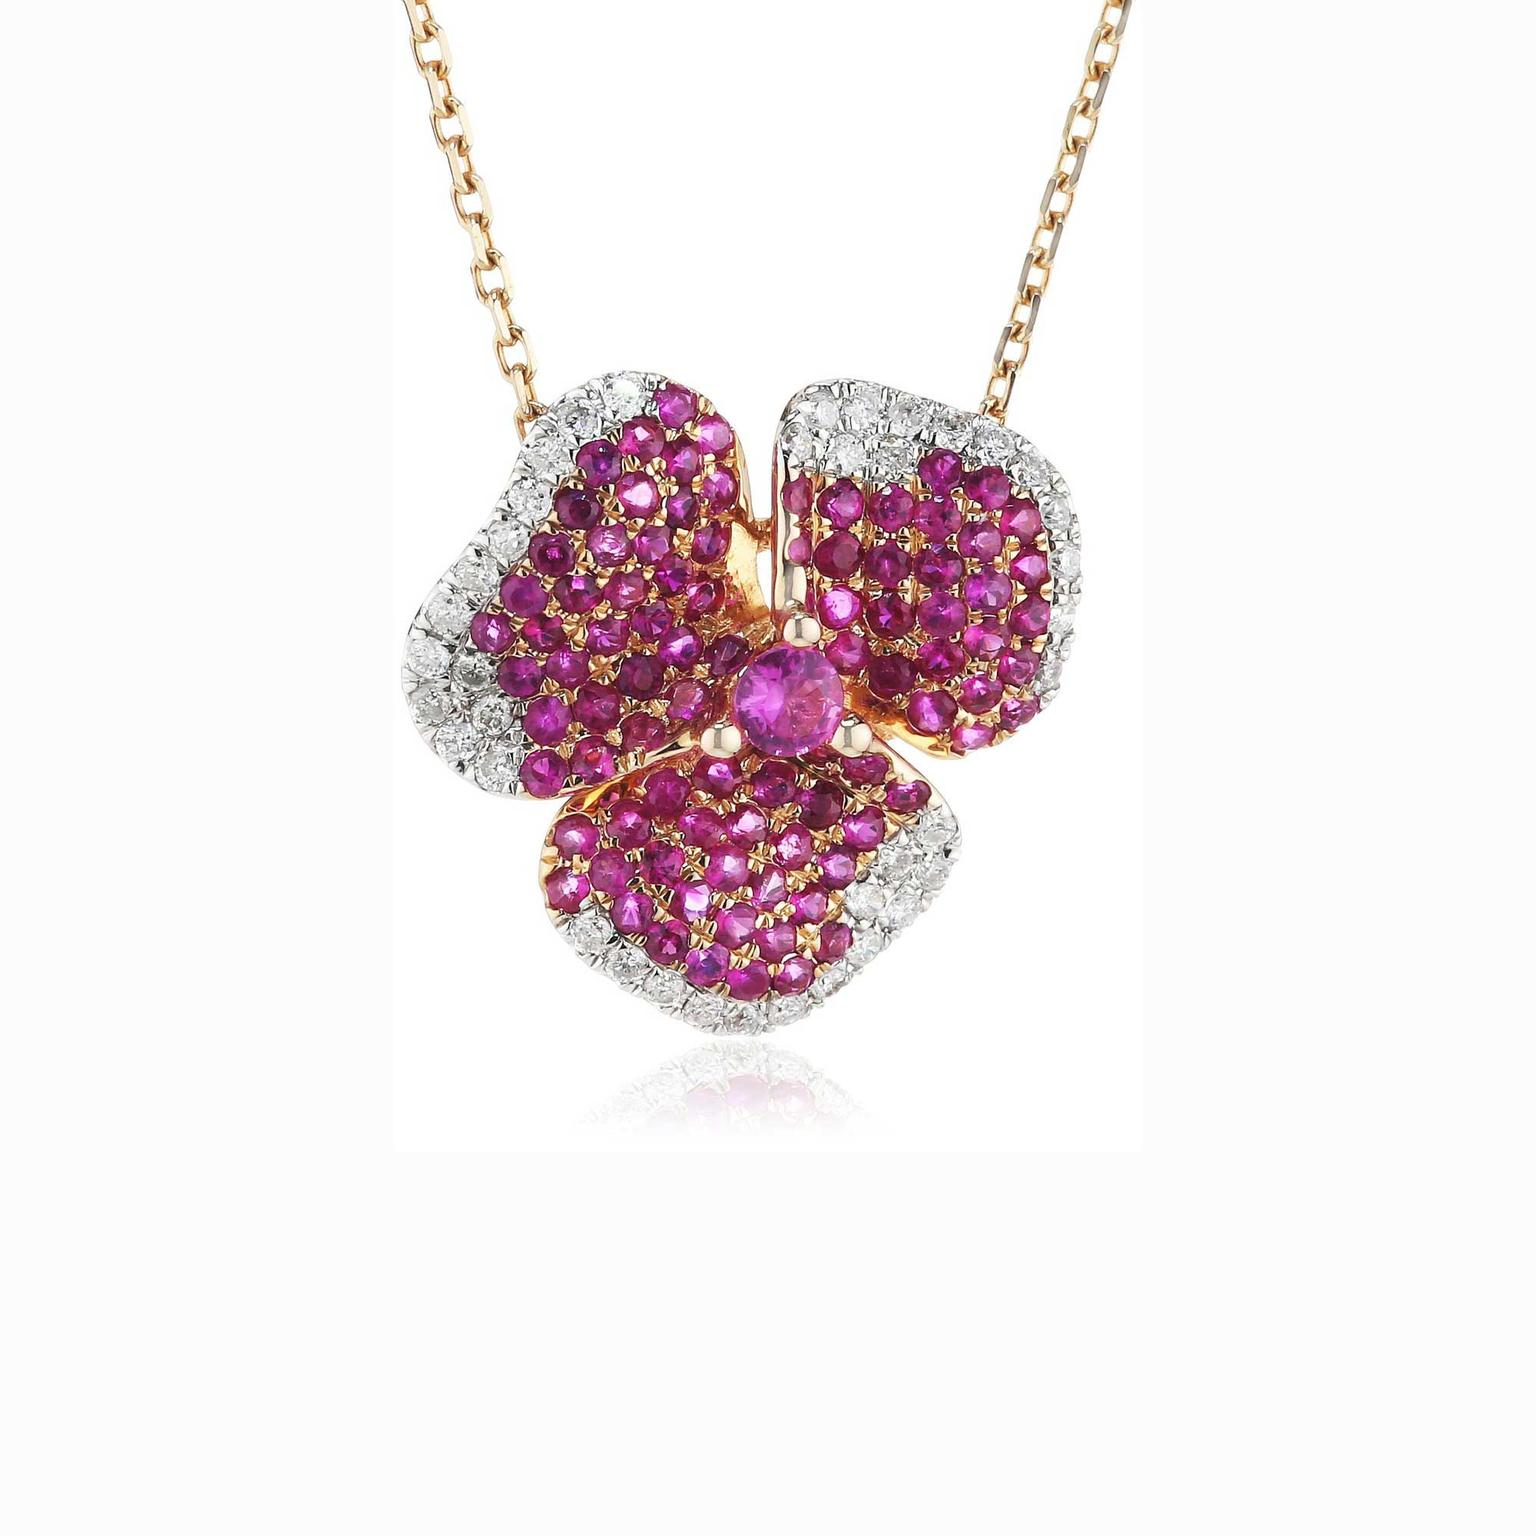 AS29 pink sapphire flower necklace